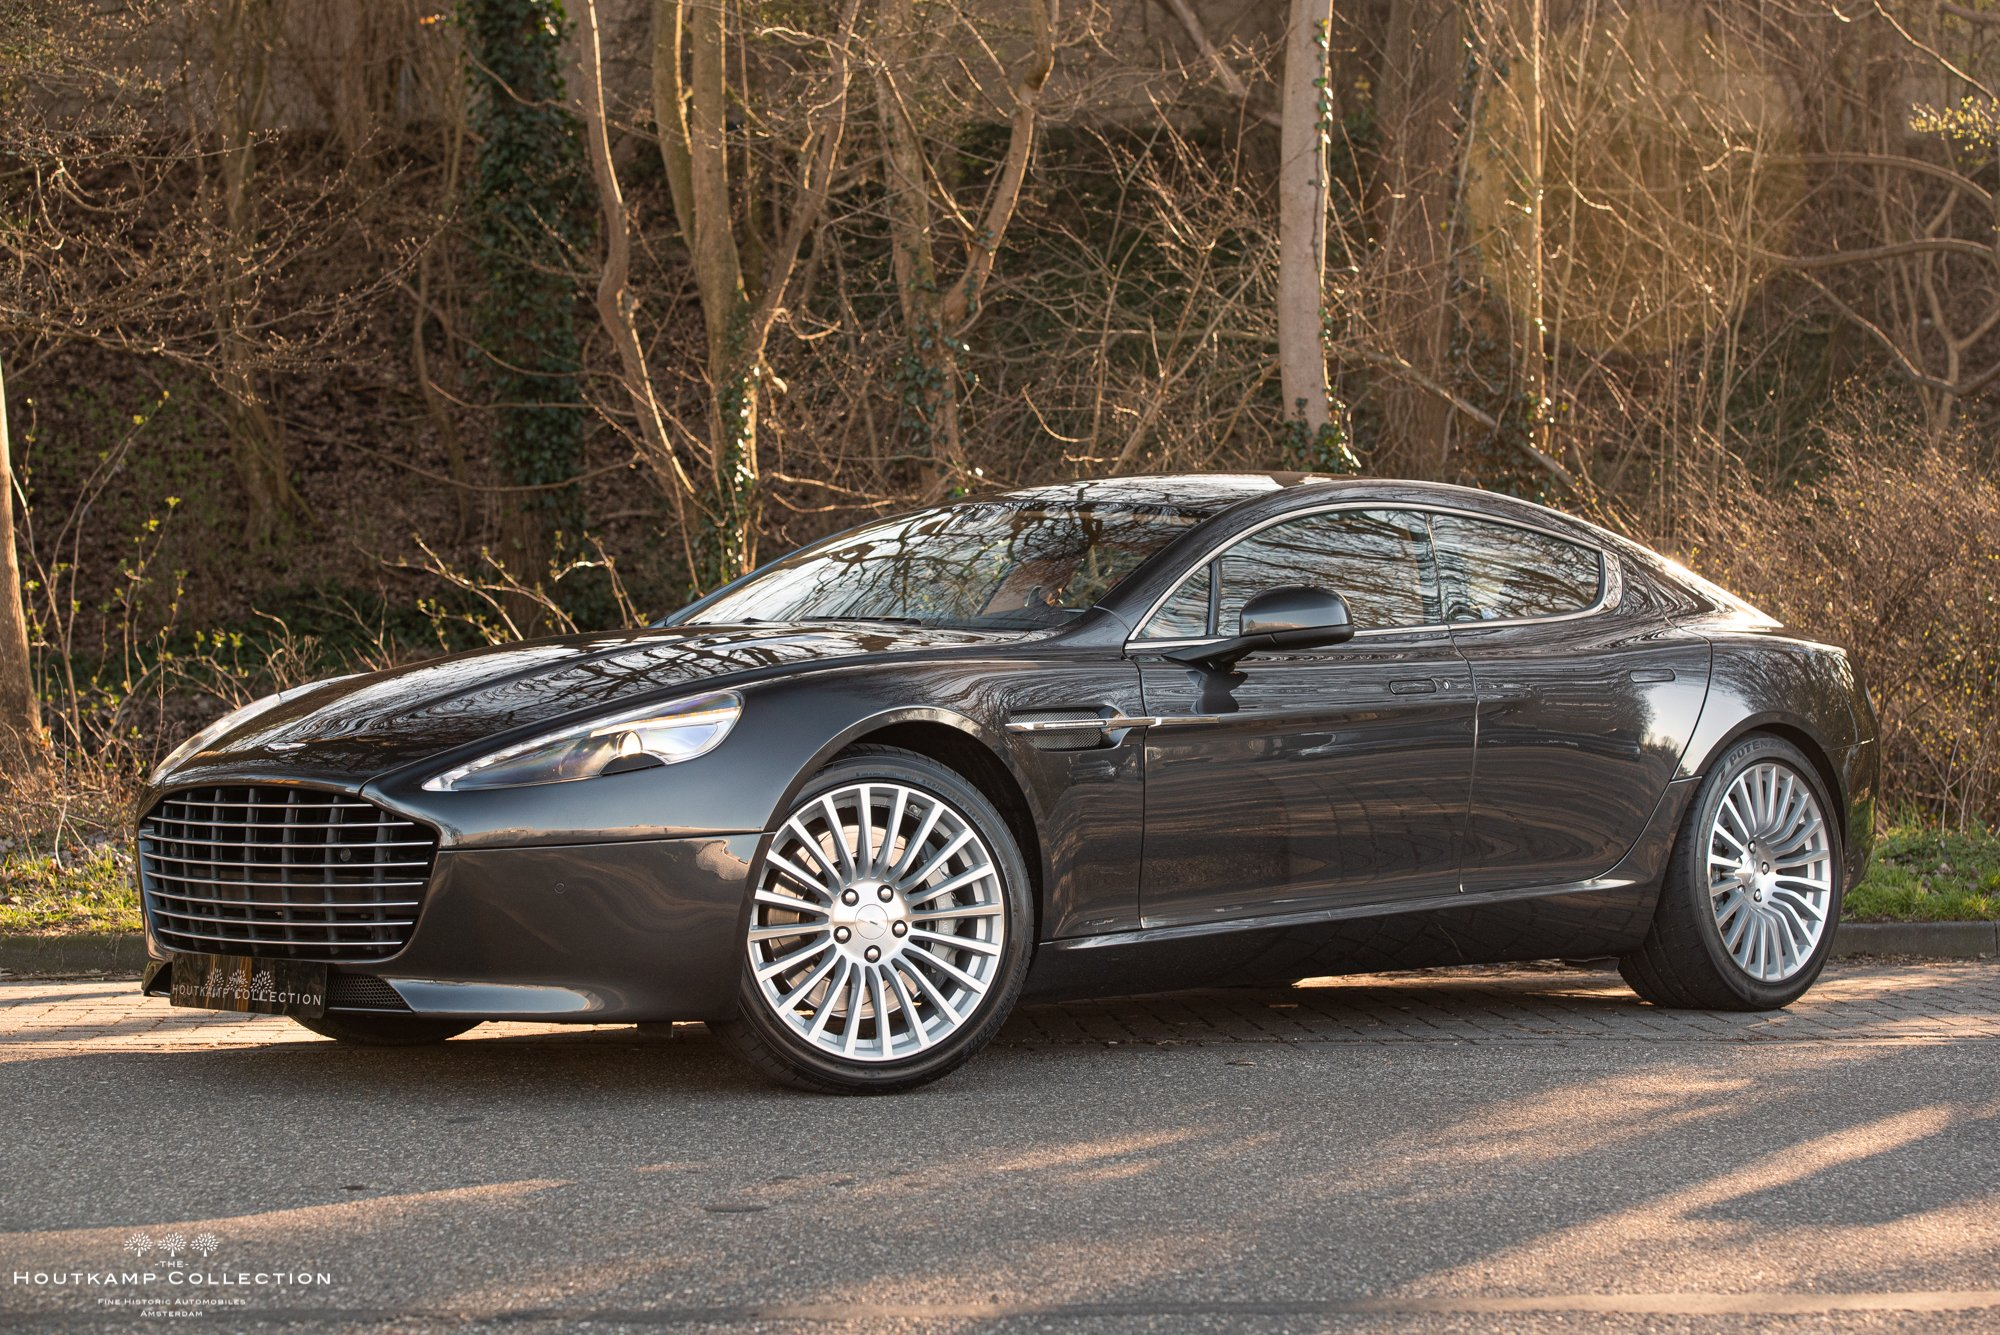 2015 Aston Martin Rapide S 43 000 Kms Since New Classic Driver Market